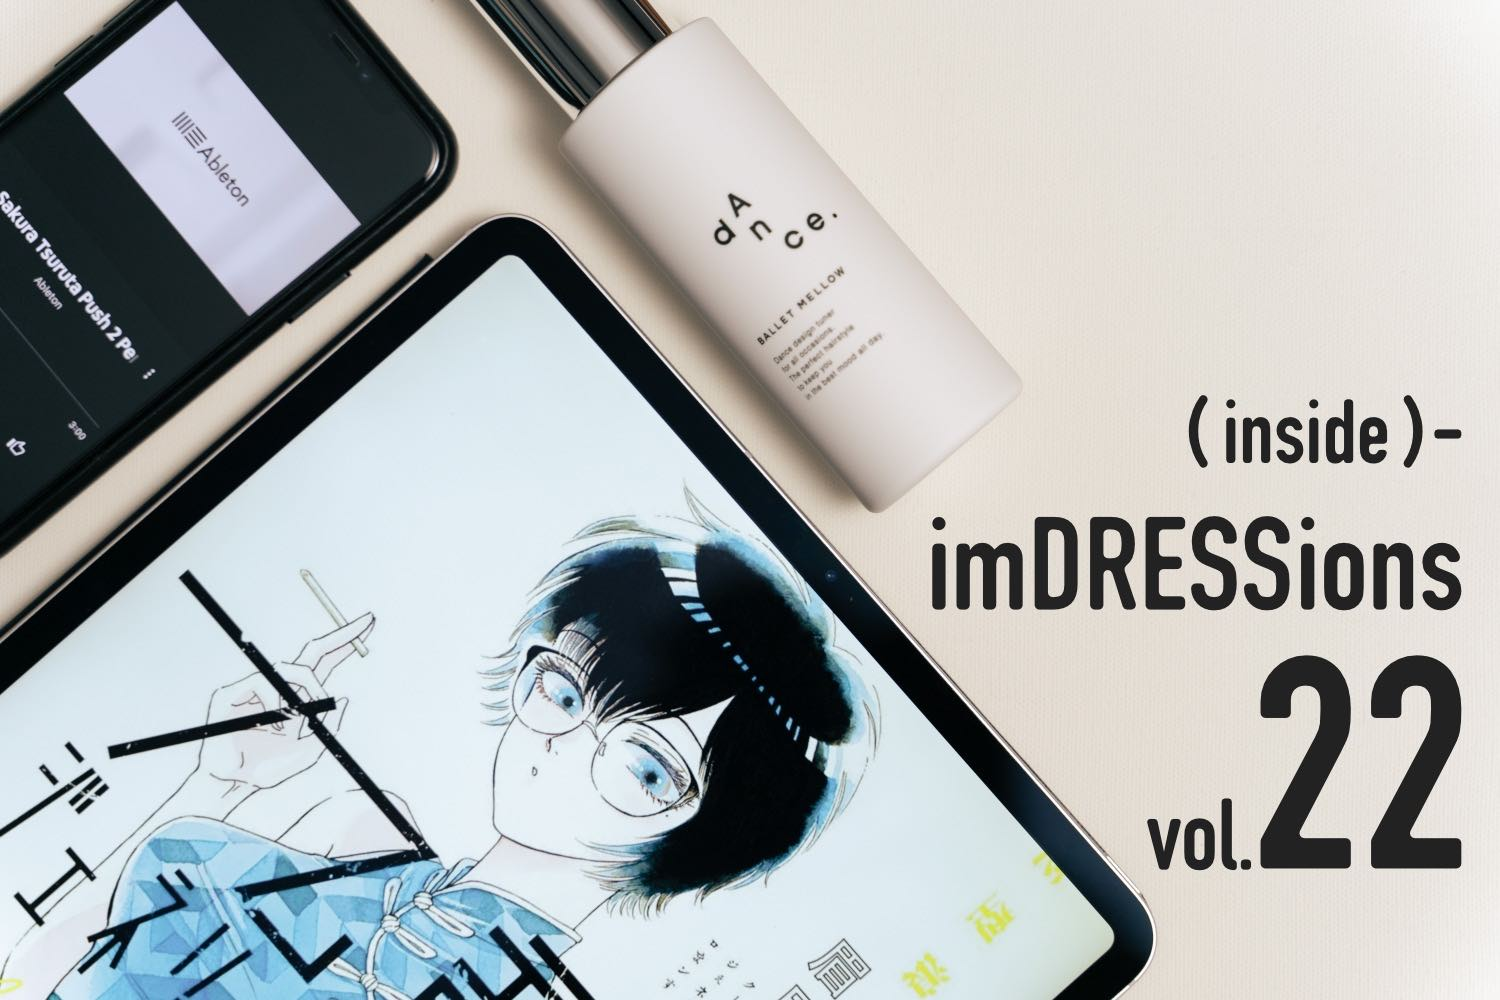 『(inside)-imDRESSions』vol.22